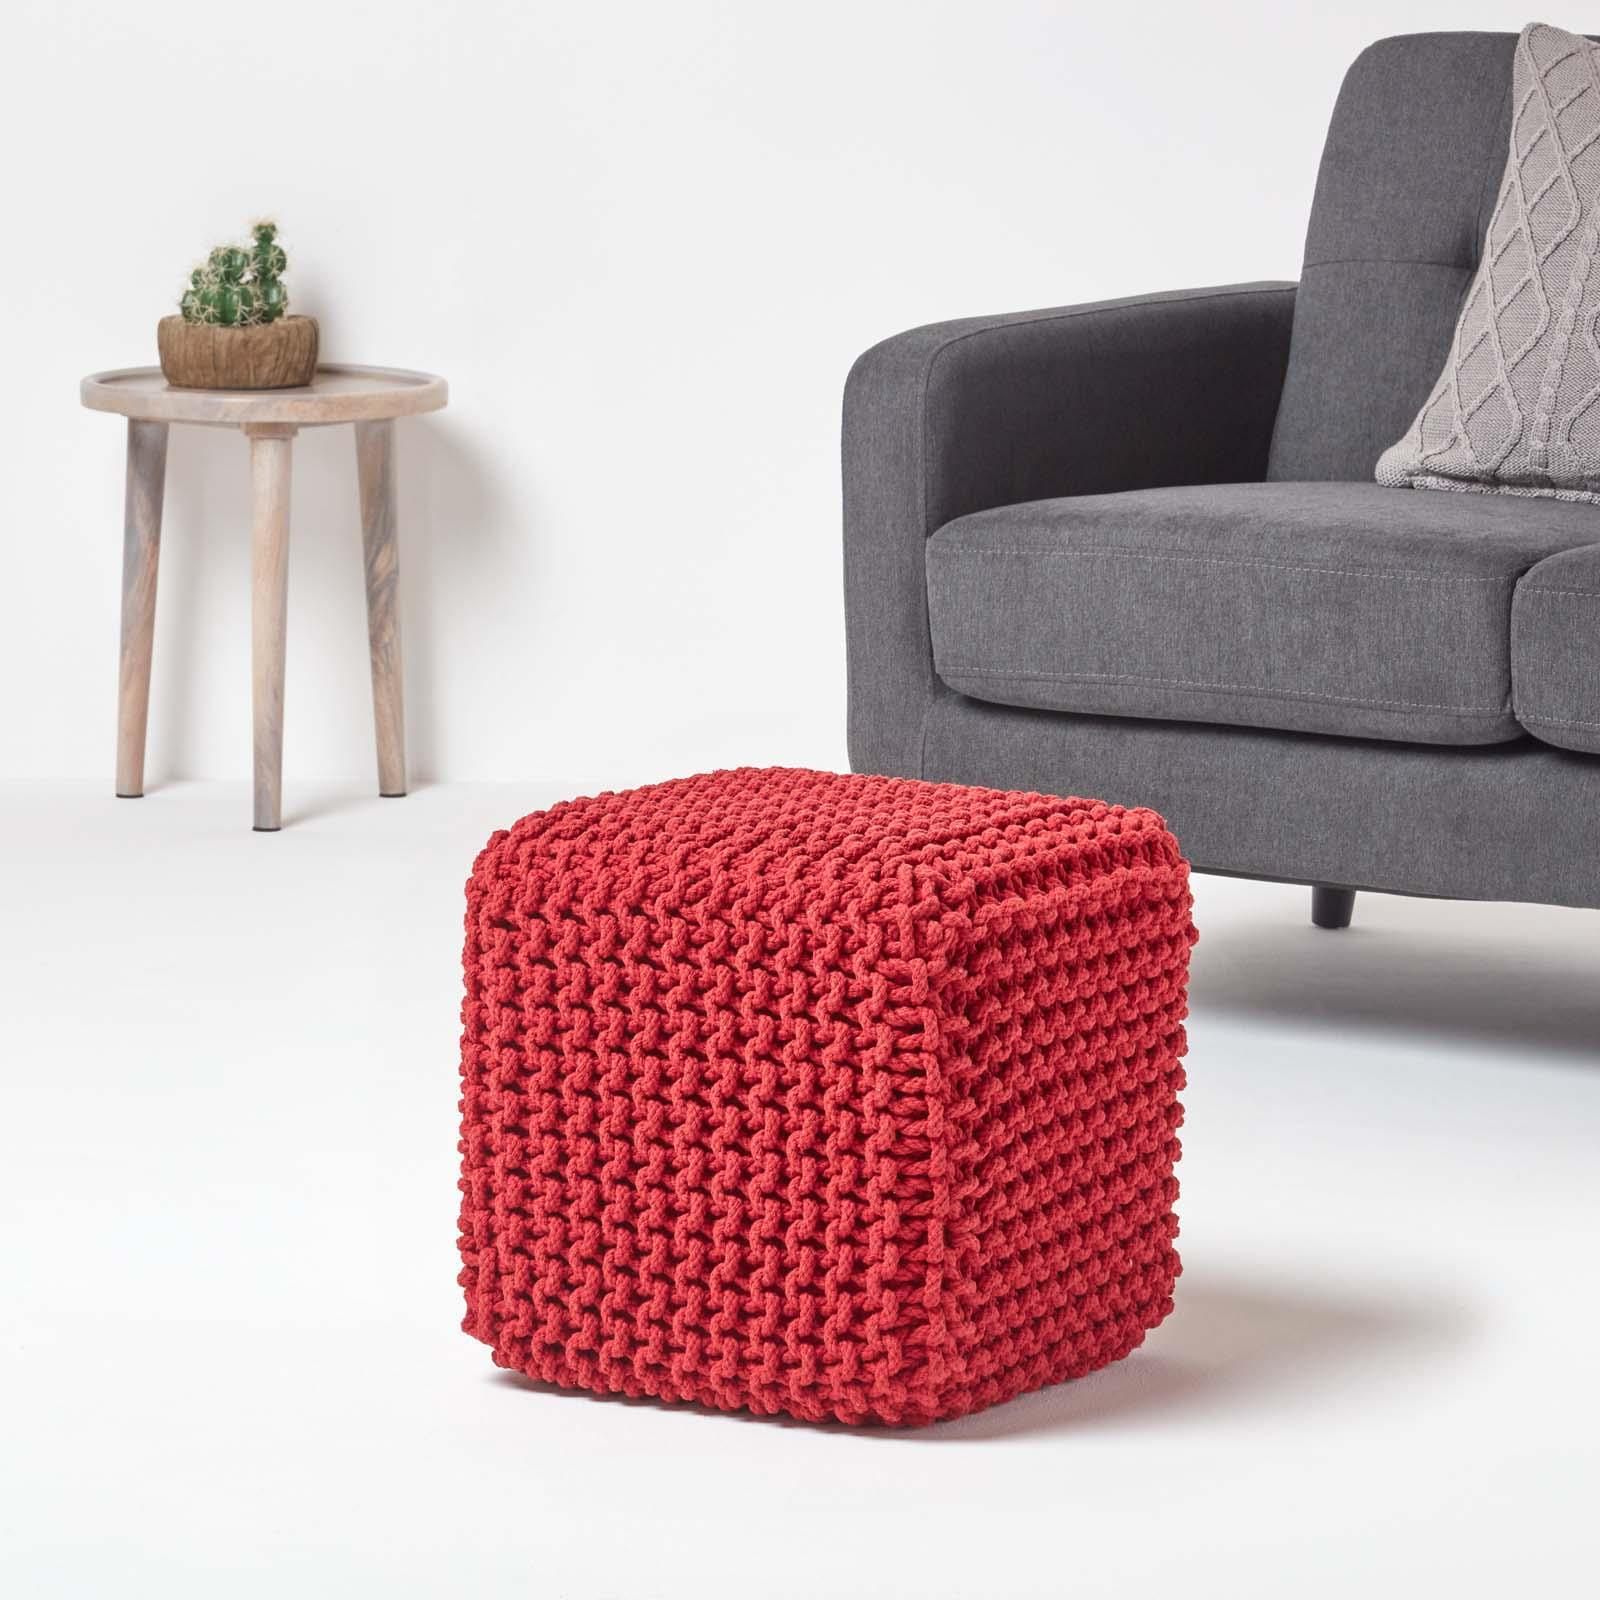 Hand-Knitted-100-Cotton-Pouffes-Round-Sphere-Or-Cube-Square-Chunky-Footstools thumbnail 176